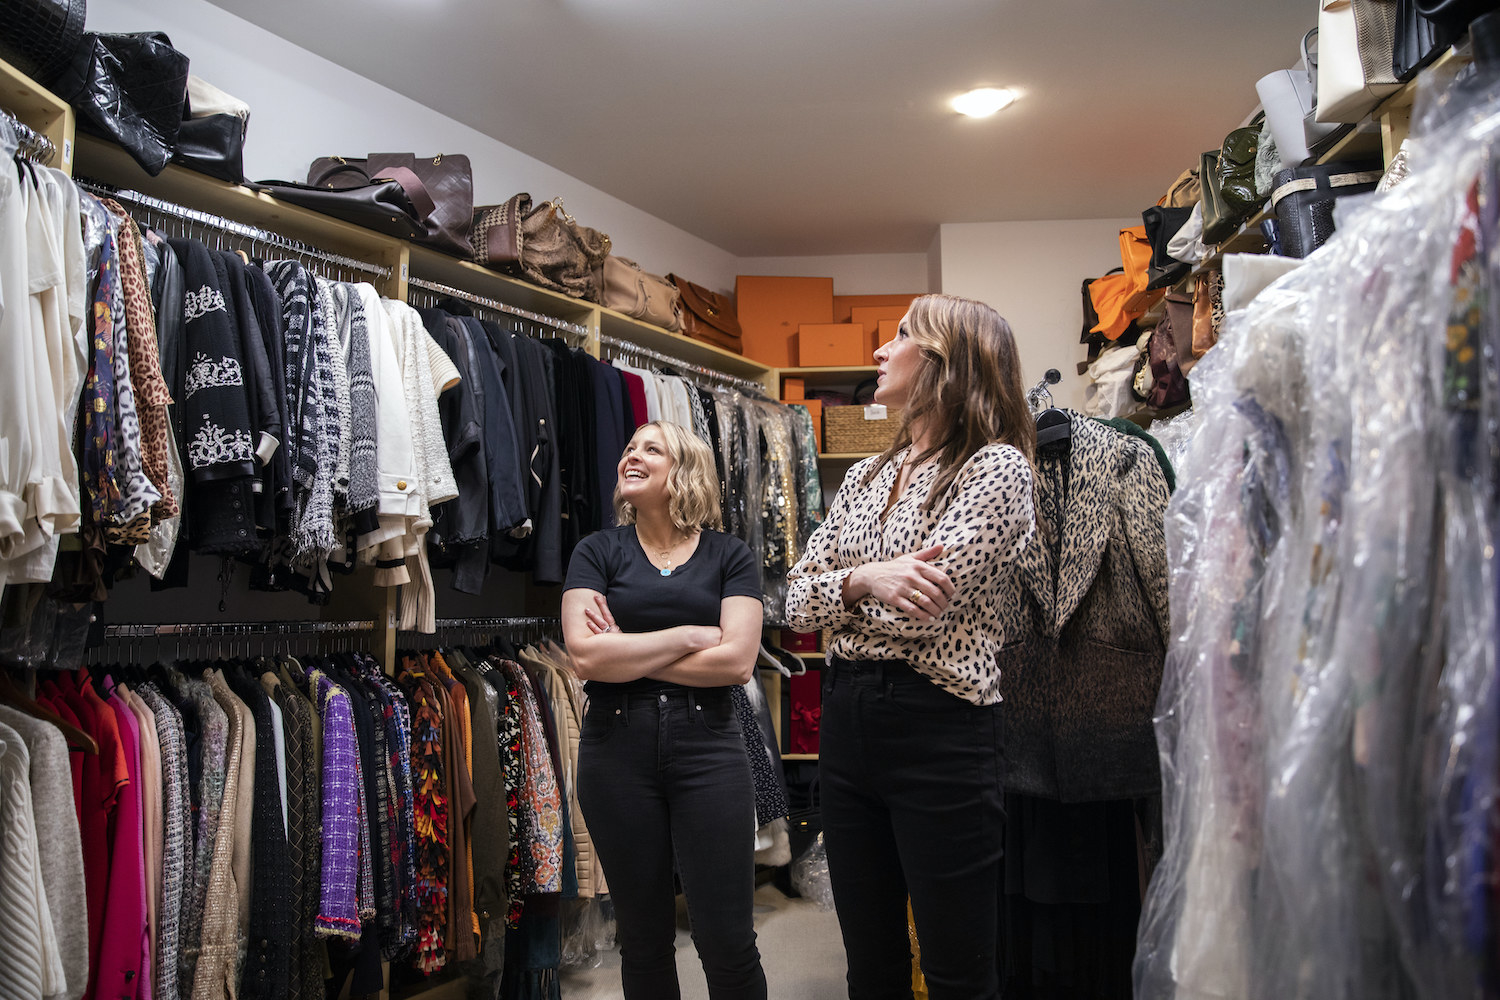 Joanna Teplin and Clea Shearer looking at a busy closet